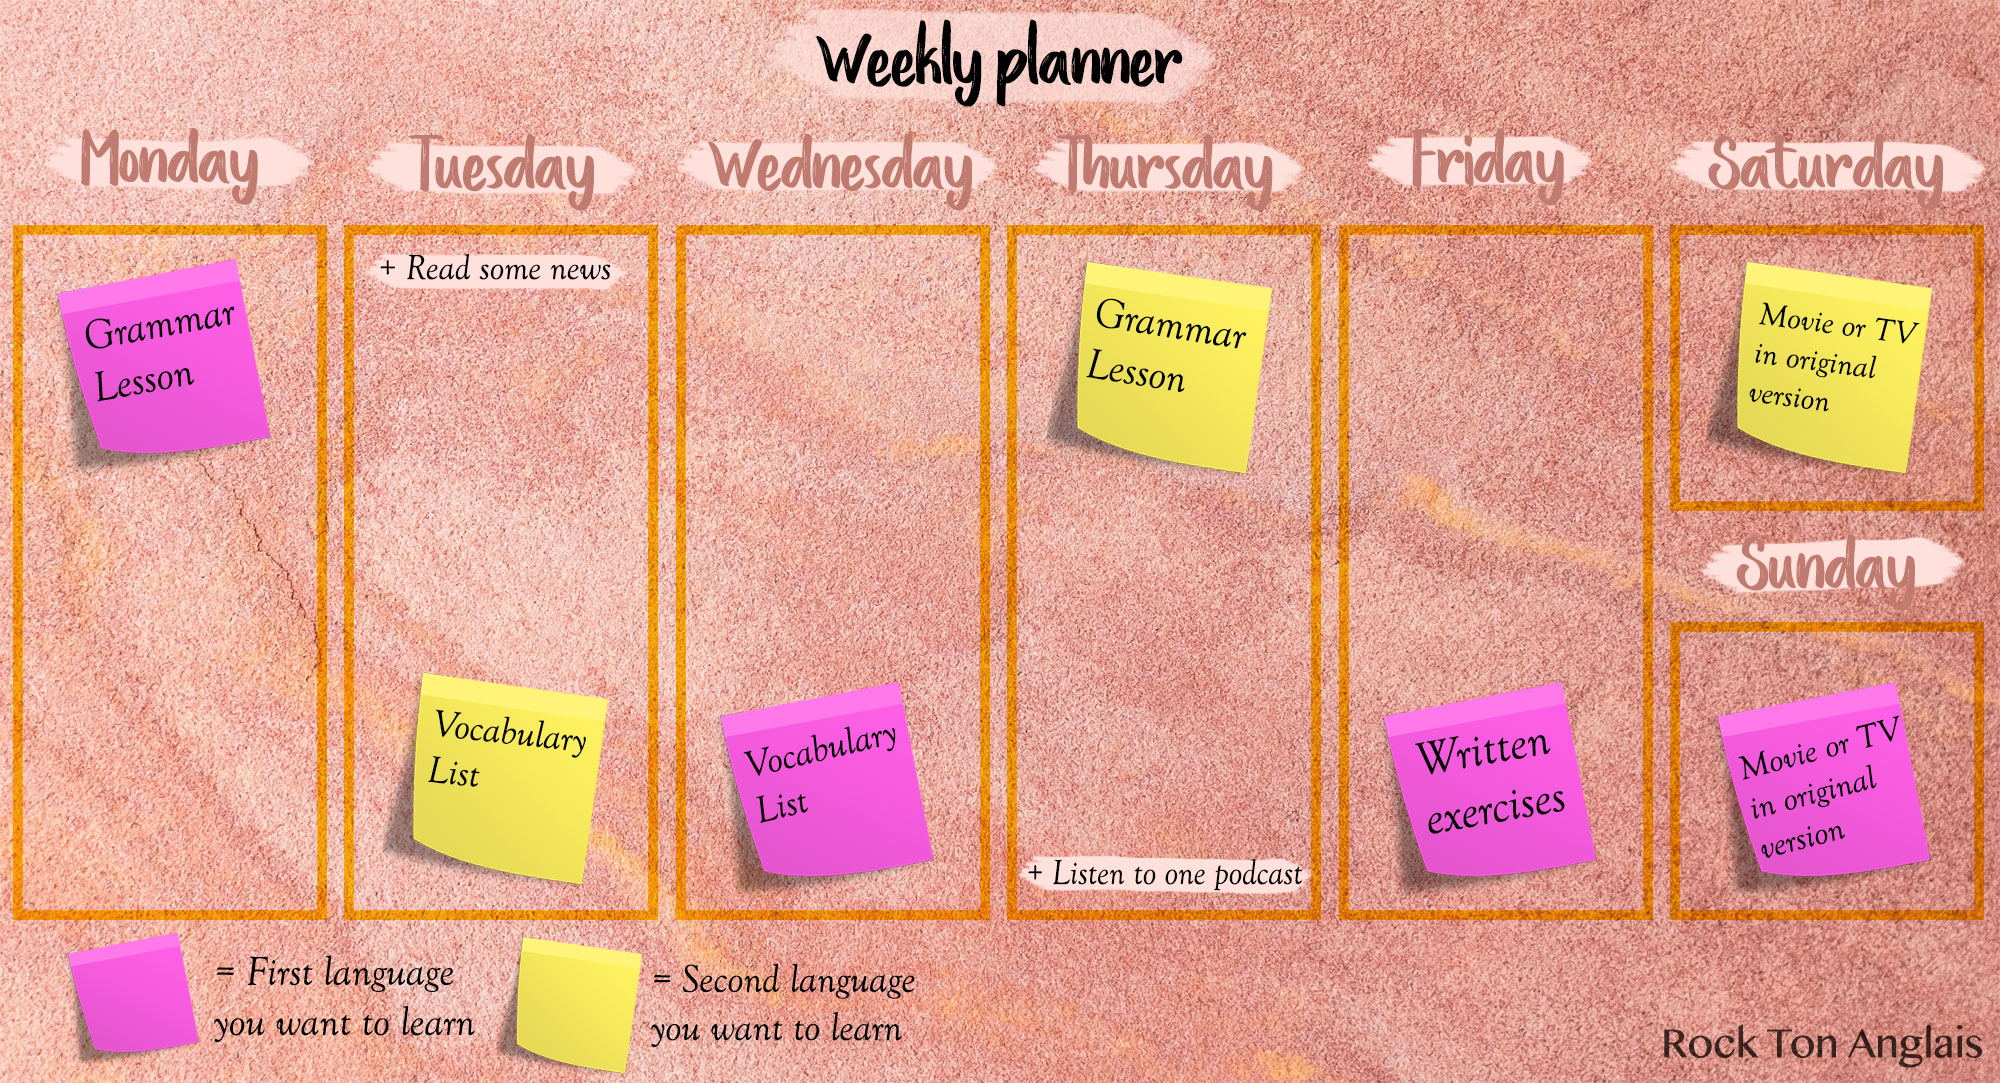 Weekly planner to learn two languages at the same time